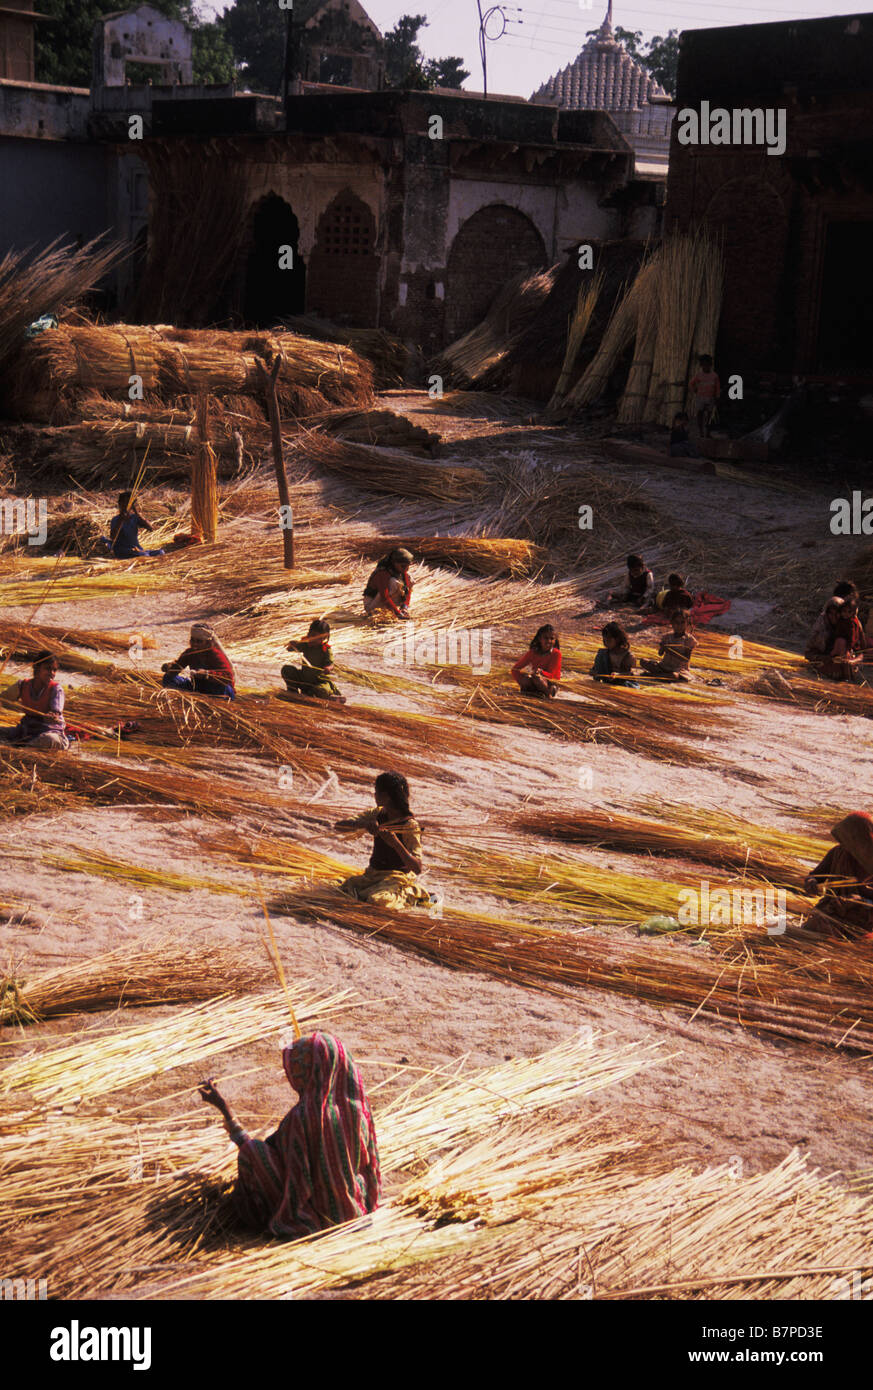 Child workers in village in Agra India - Stock Image